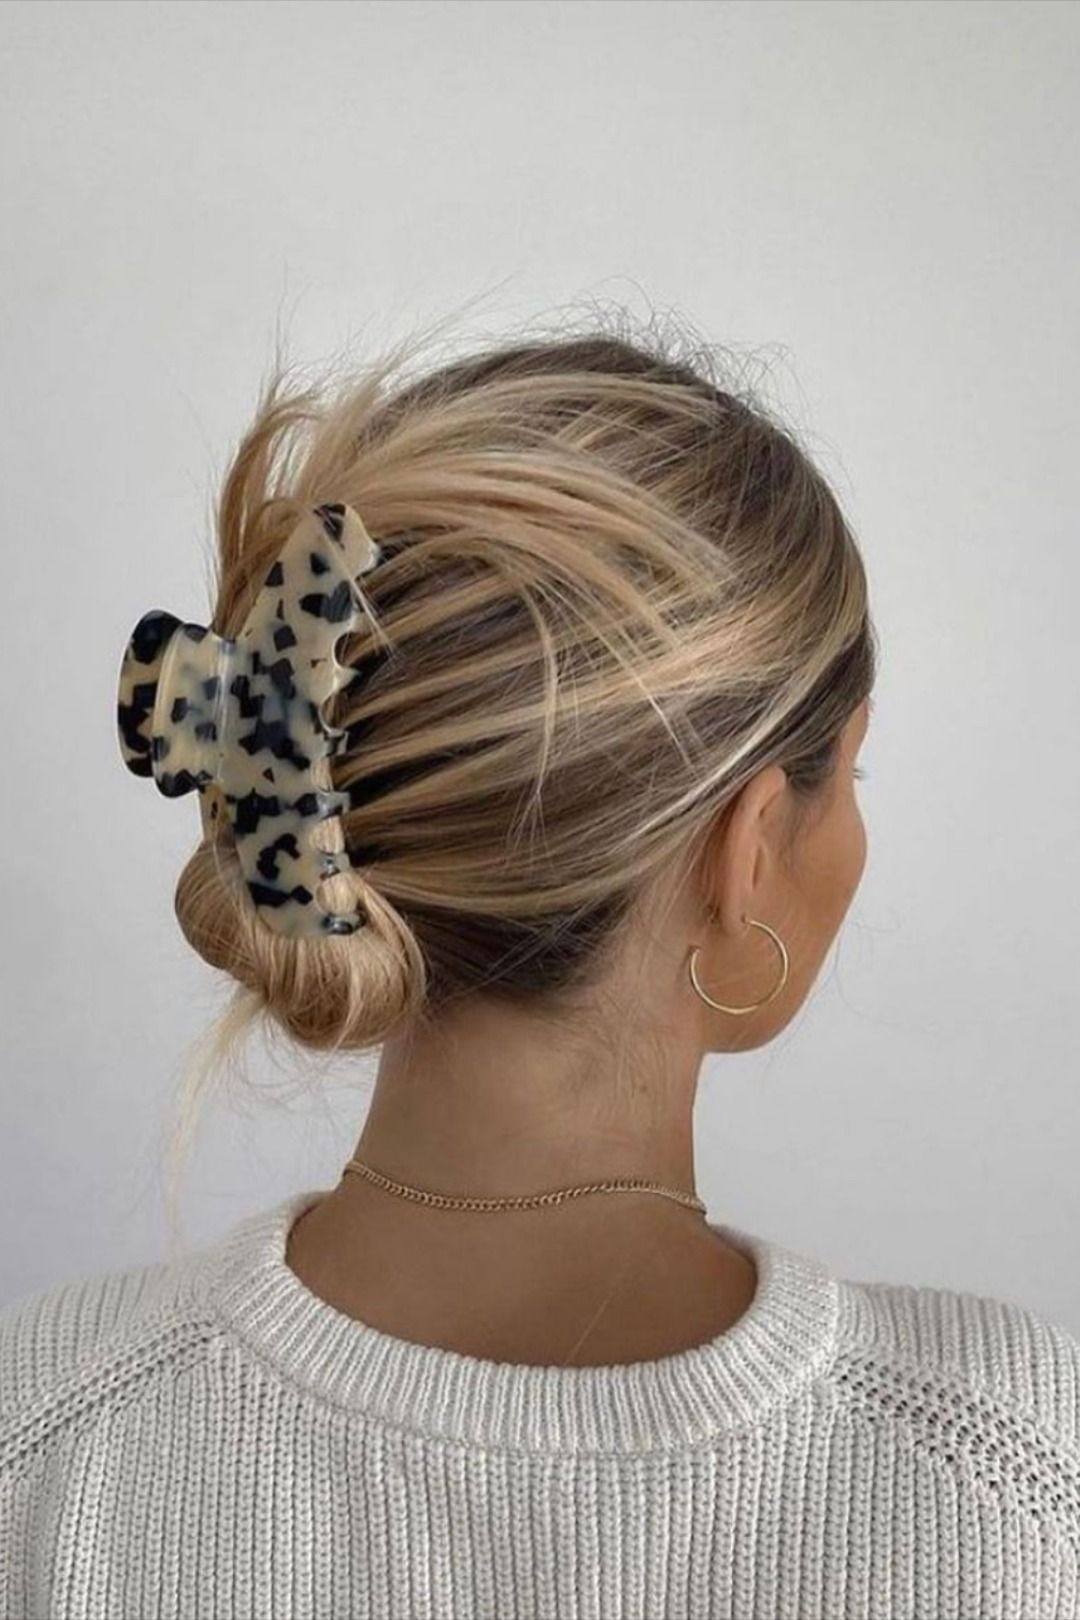 Specail grey hair style for woman